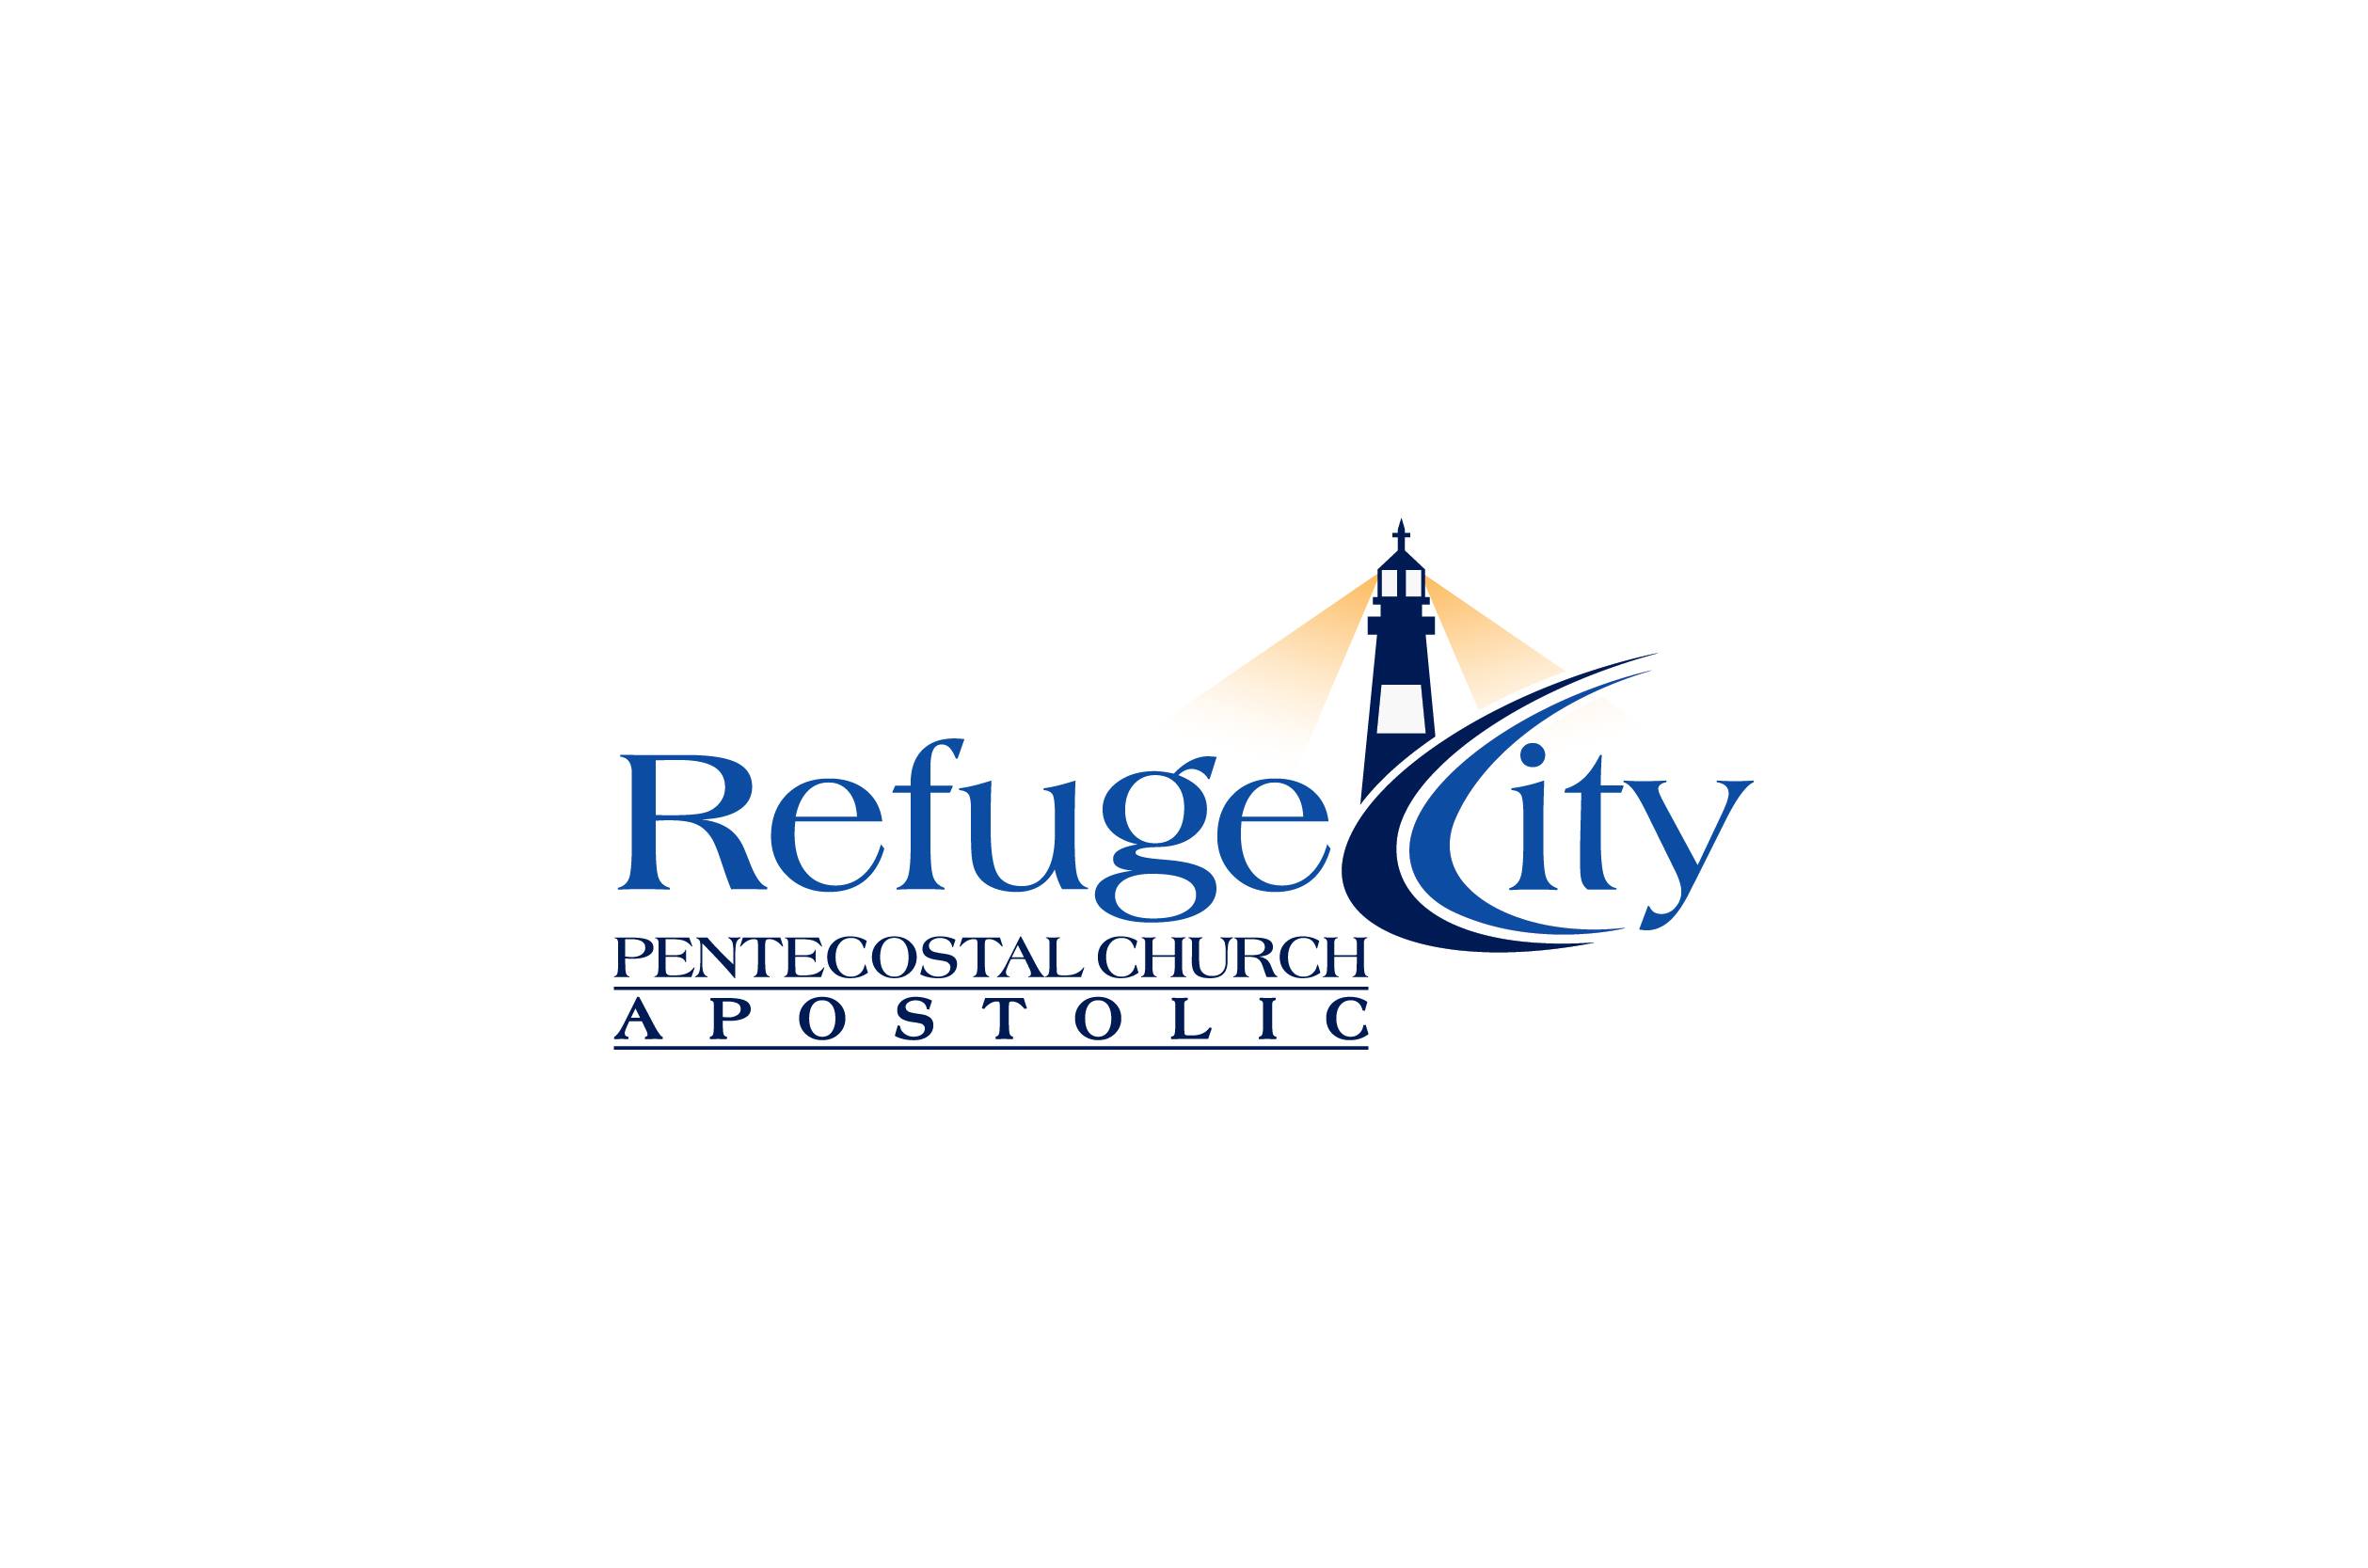 Refuge City Pentecostal Church